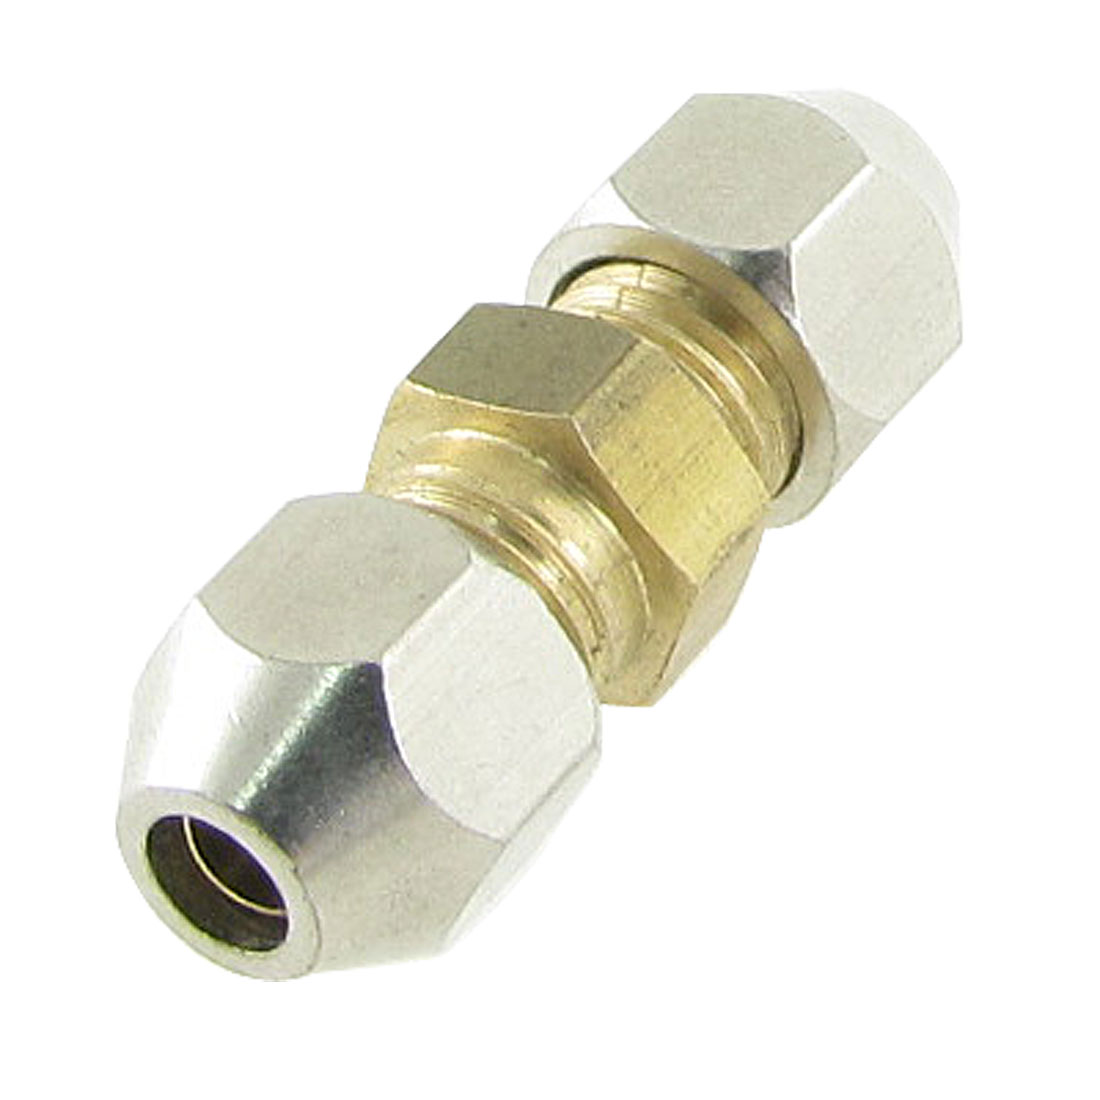 4mm Air Tube Brass Metal Pneumatic Compression Fitting Connector Coupler